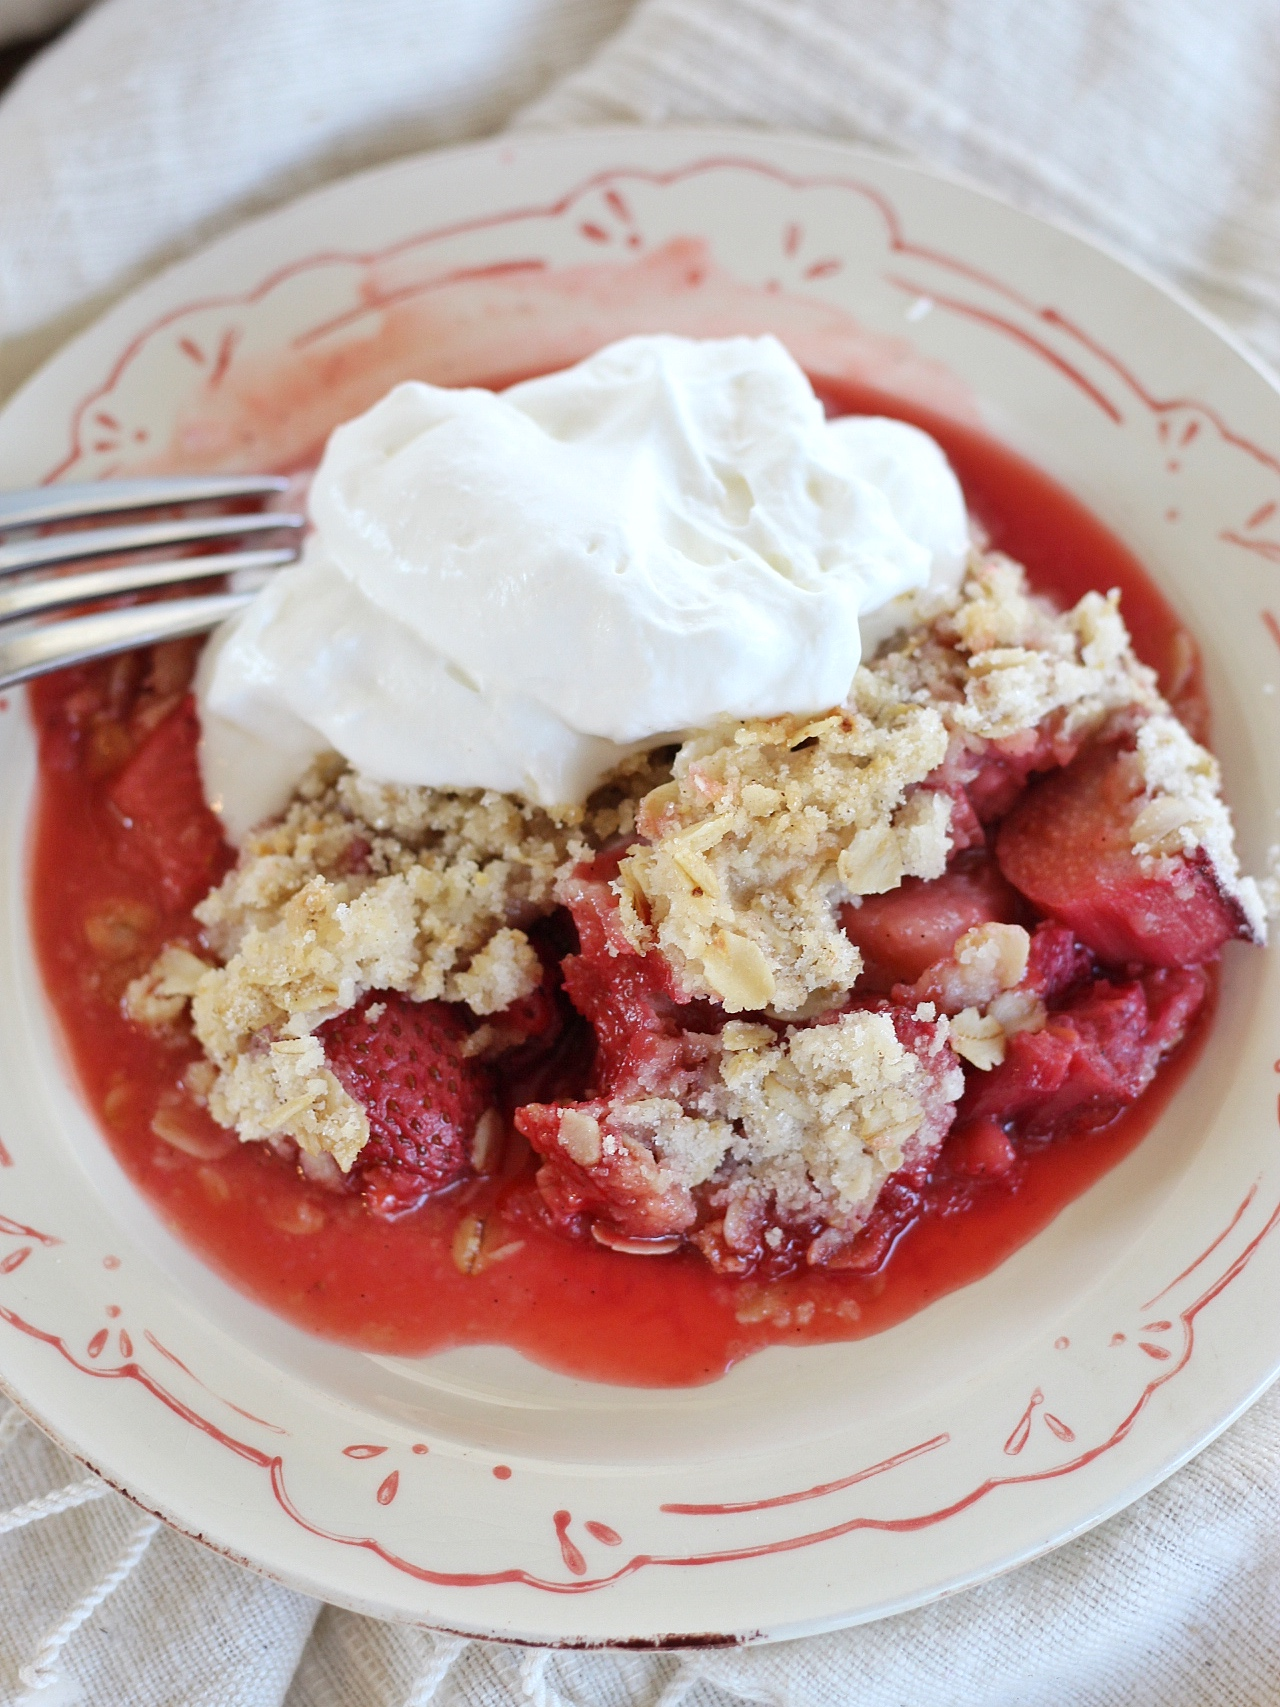 The Most Delicious Strawberry Rhubarb Crumble #strawberryrhubarbcrumble #summerrecipe #summerdessert #strawberrydessert #rhubarbdessert #crumble #easysummerrecipe #cakebycourtney